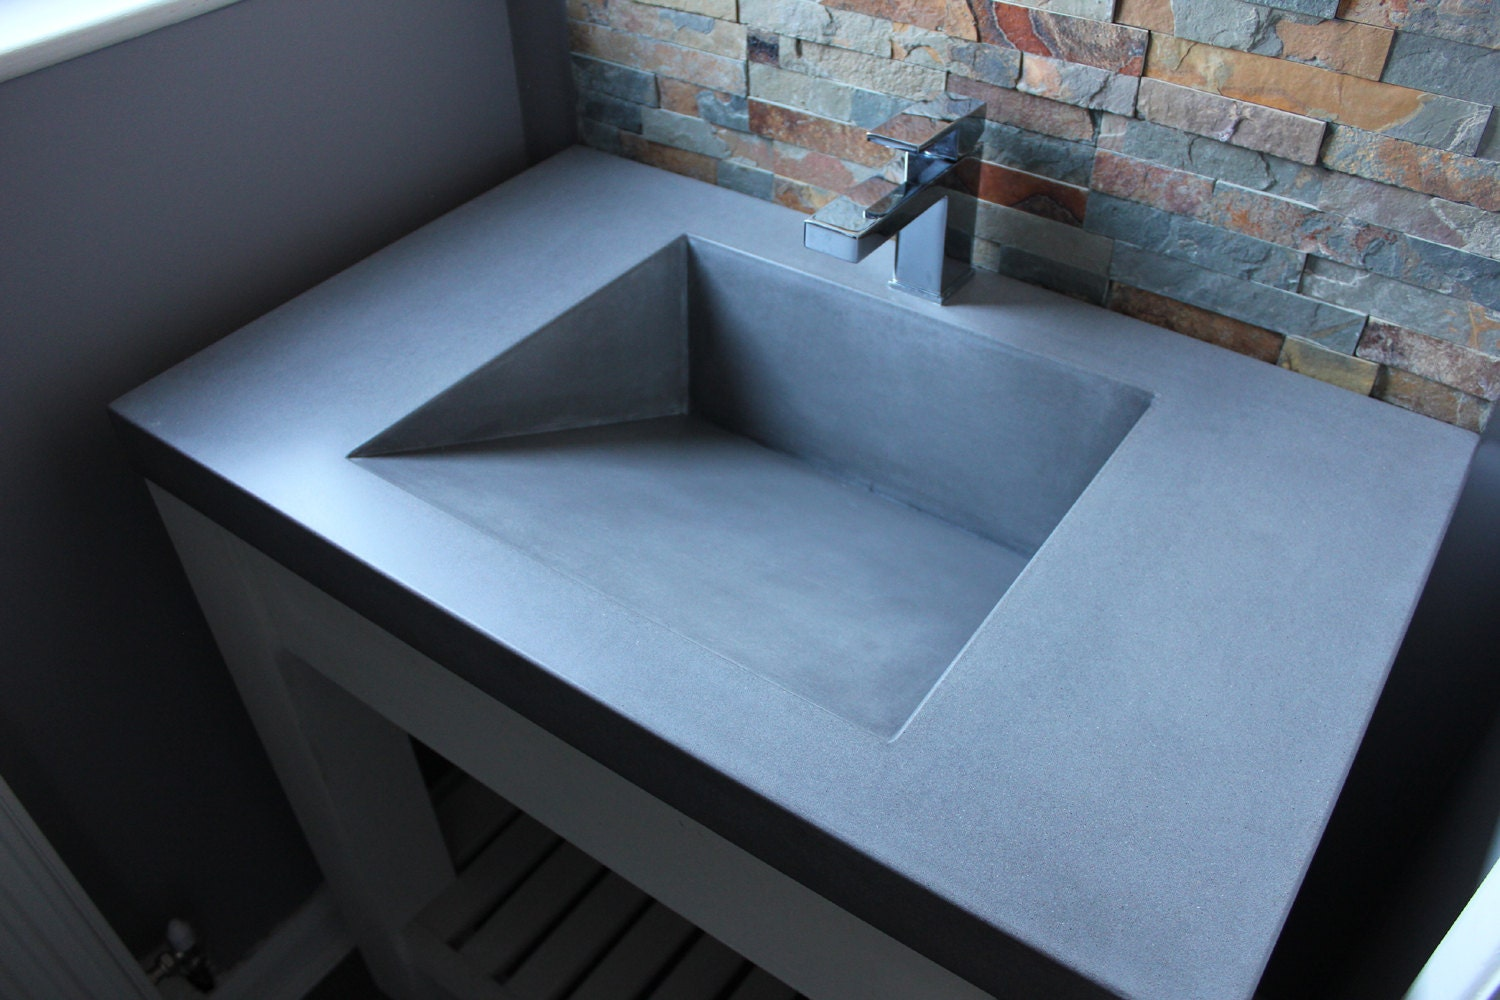 Concrete Industrial Square Ramp Sink / Basin in Cool Grey / | Etsy